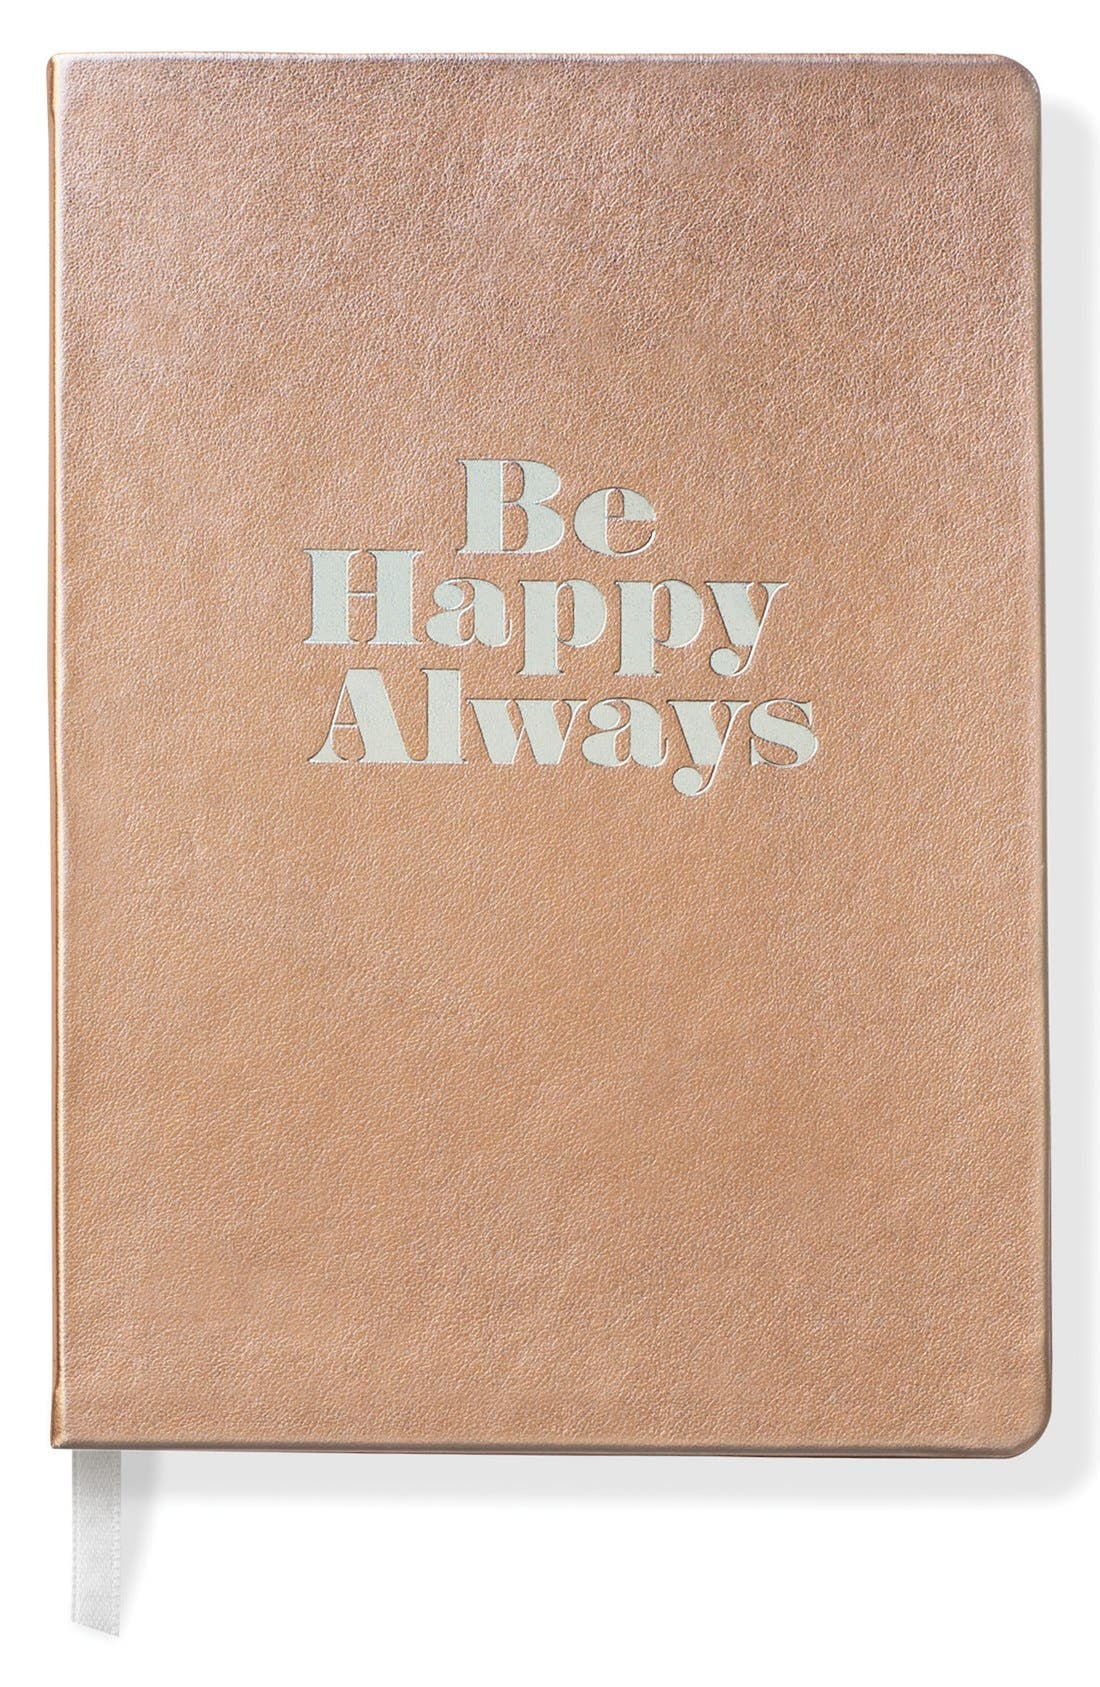 Main Image - Fringe Studio 'Be Happy Always' Softcover Journal